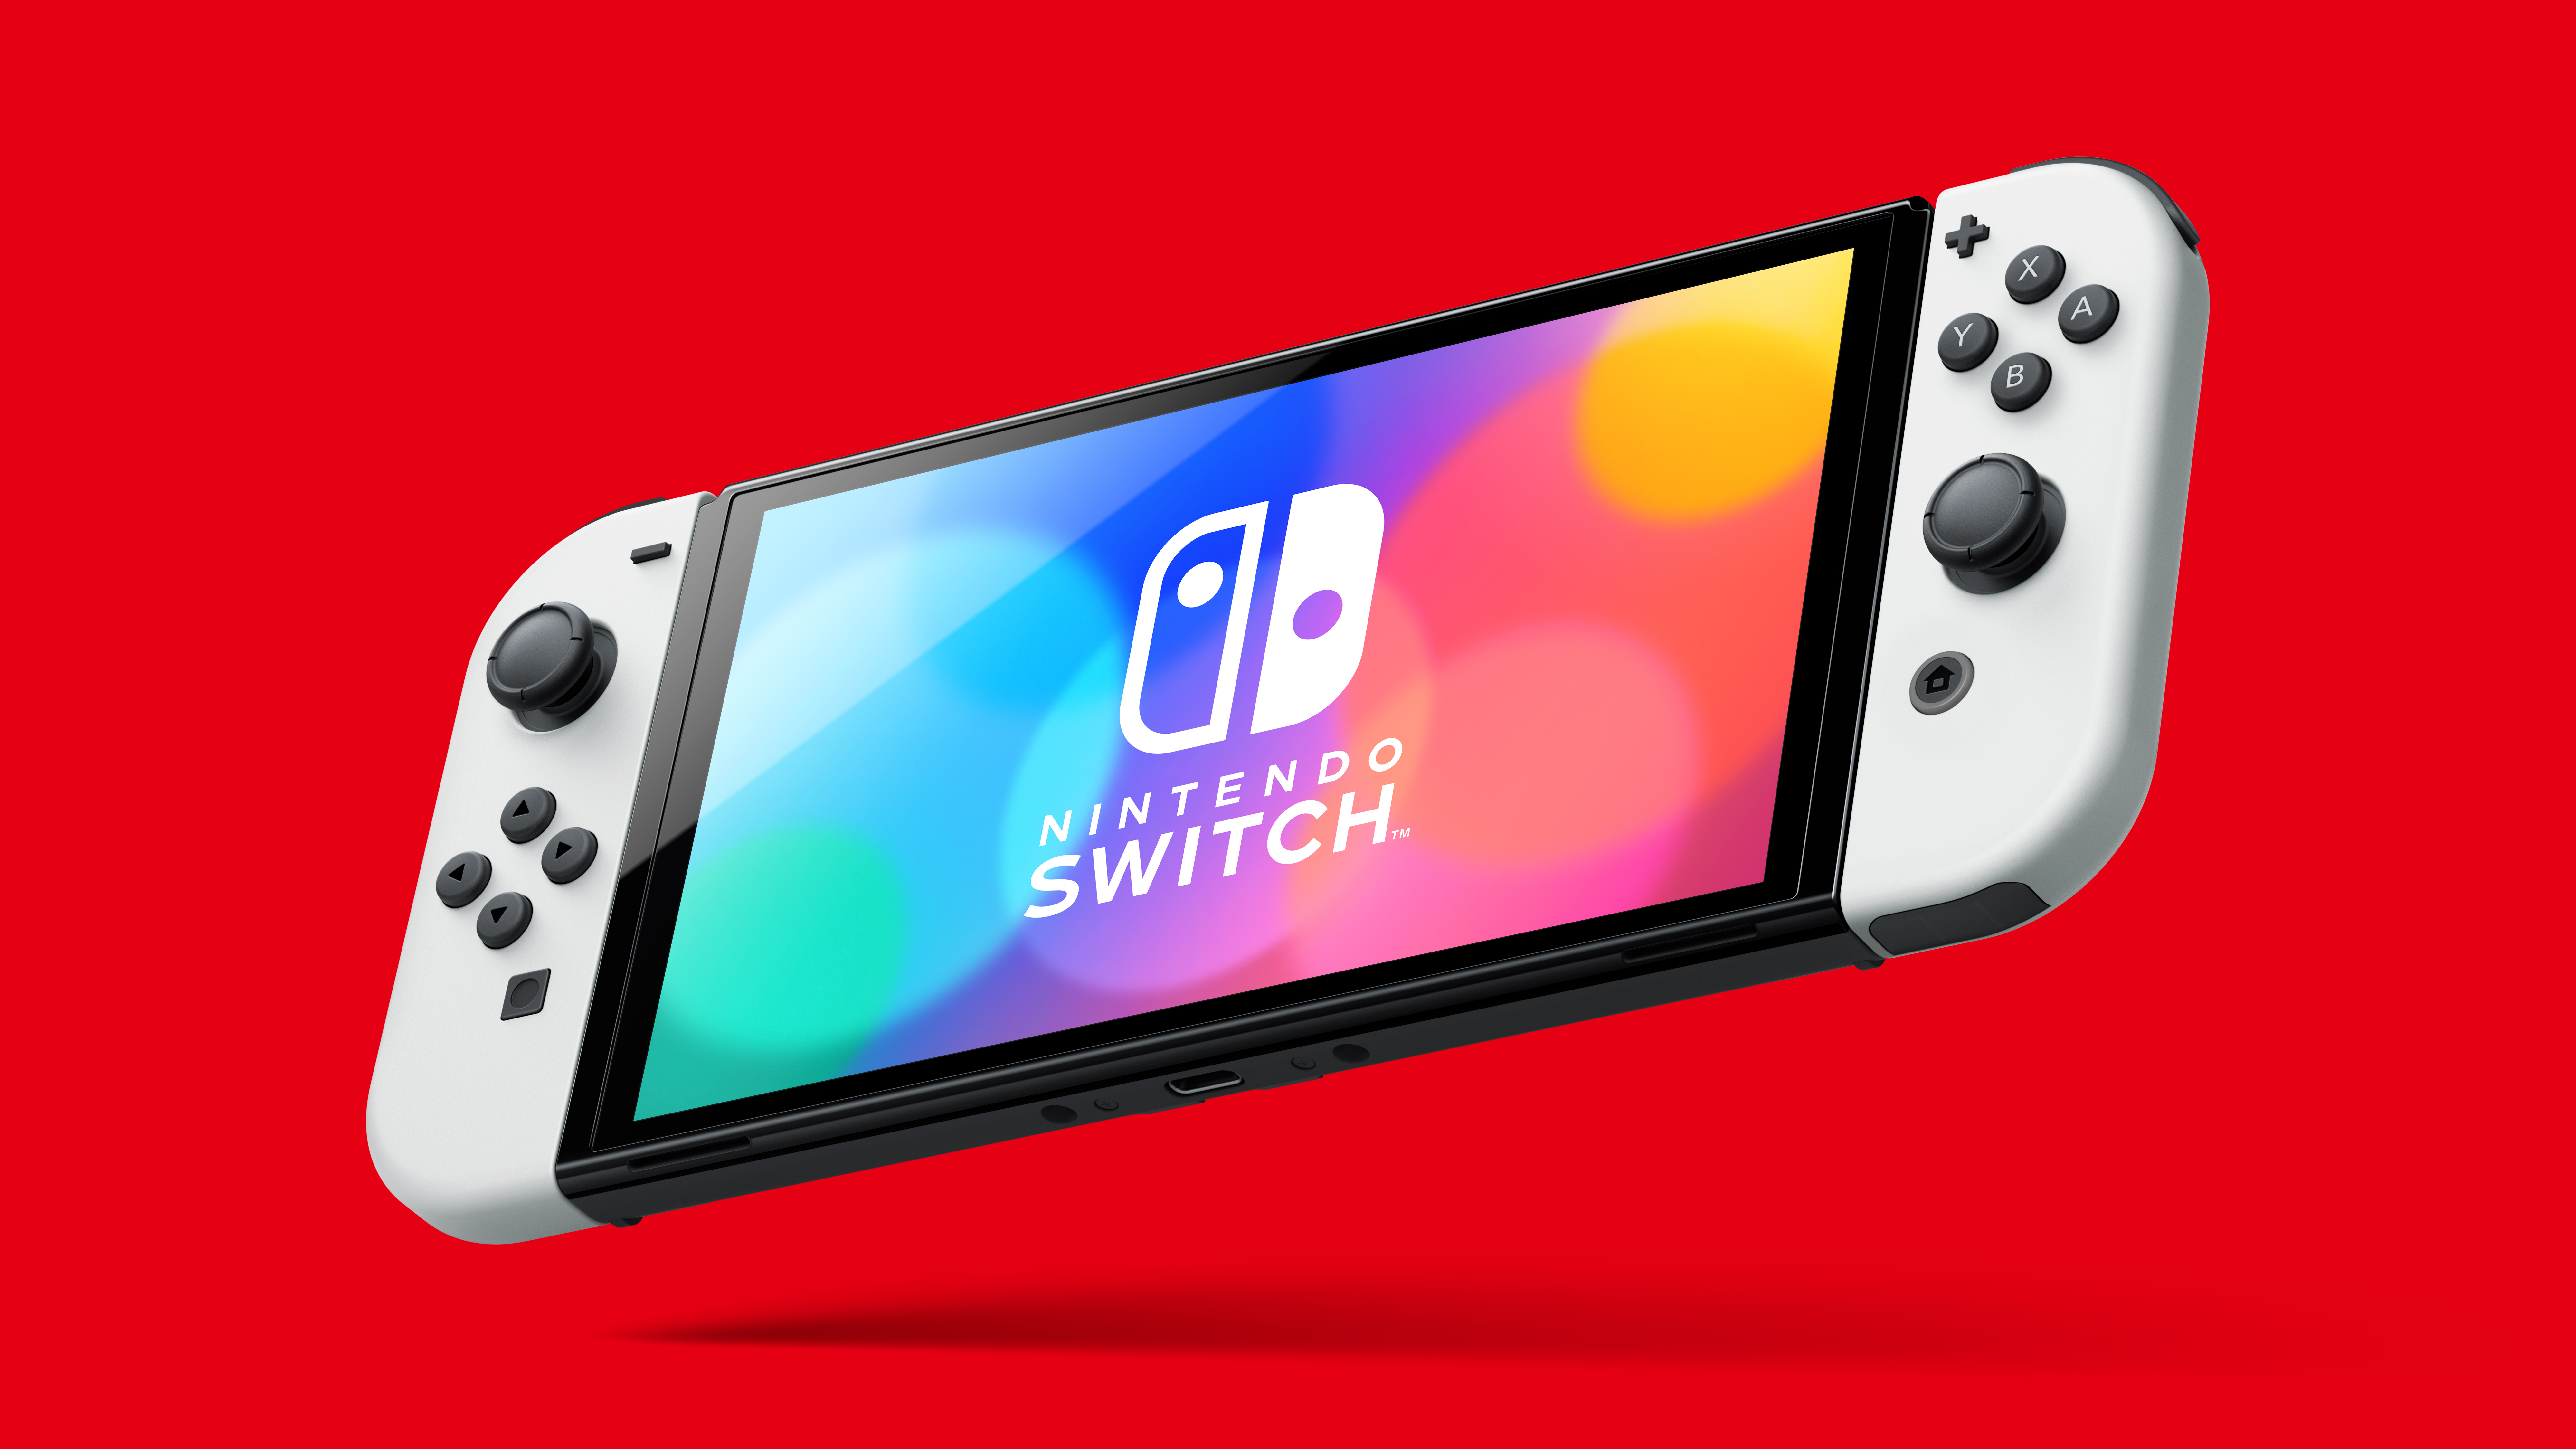 The new Nintendo Switch (OLED model) in handheld mode on a red background